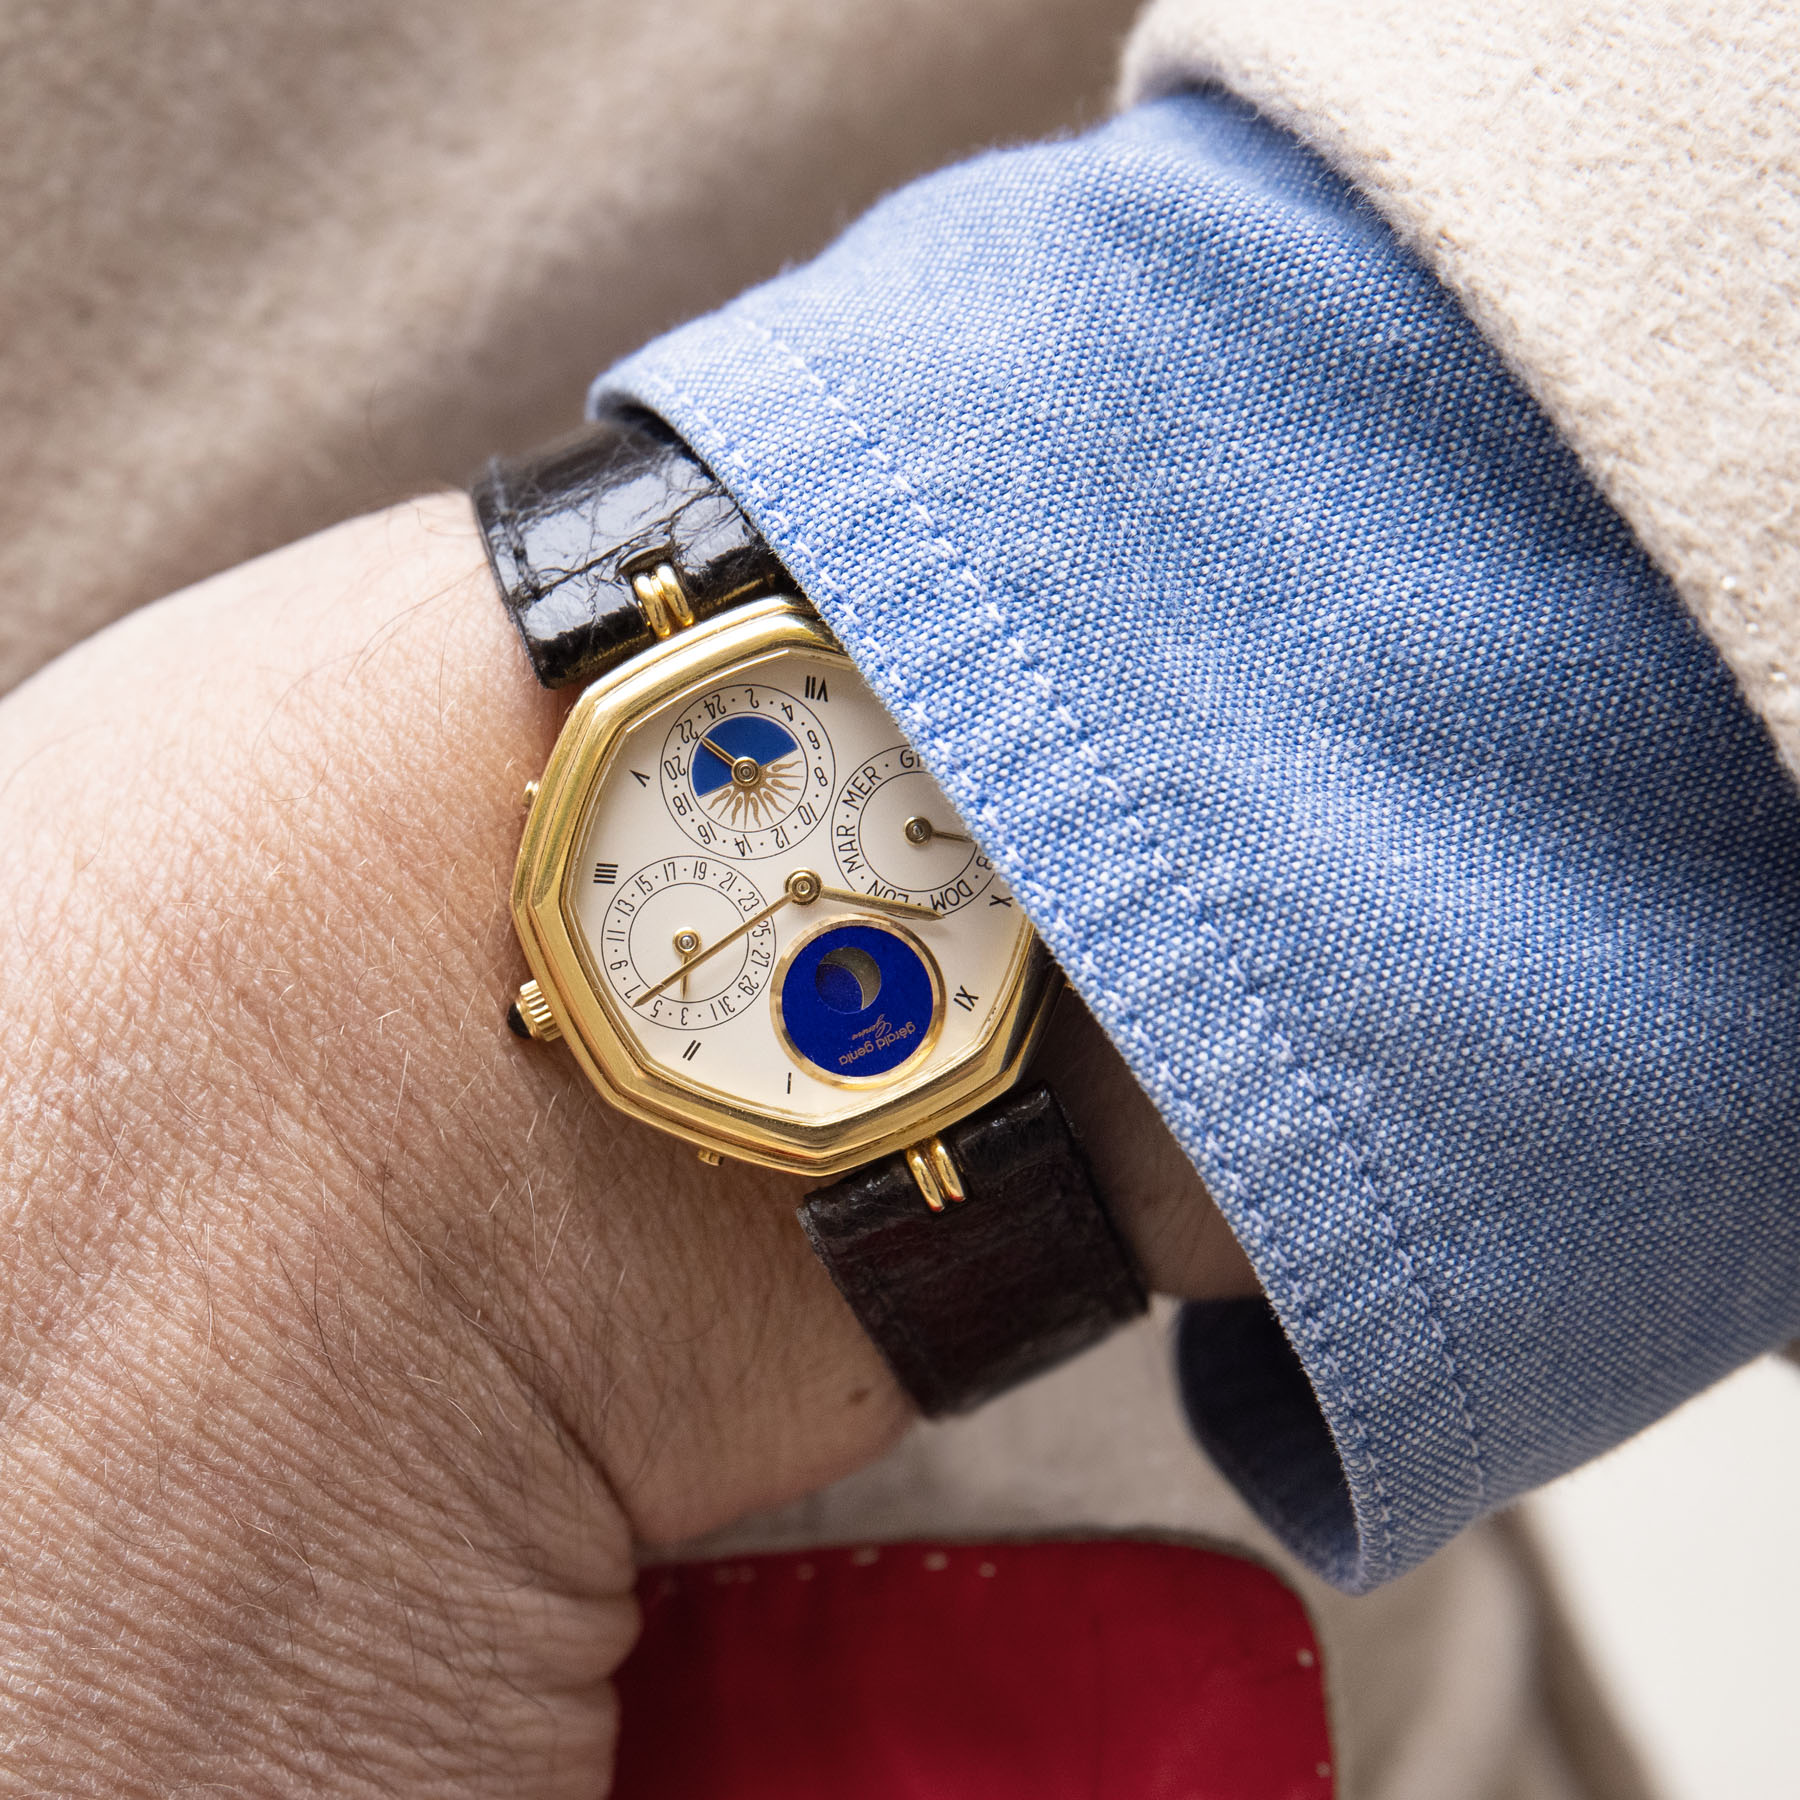 ALL SHAPES AND SIZES – NEW WATCH TRENDS